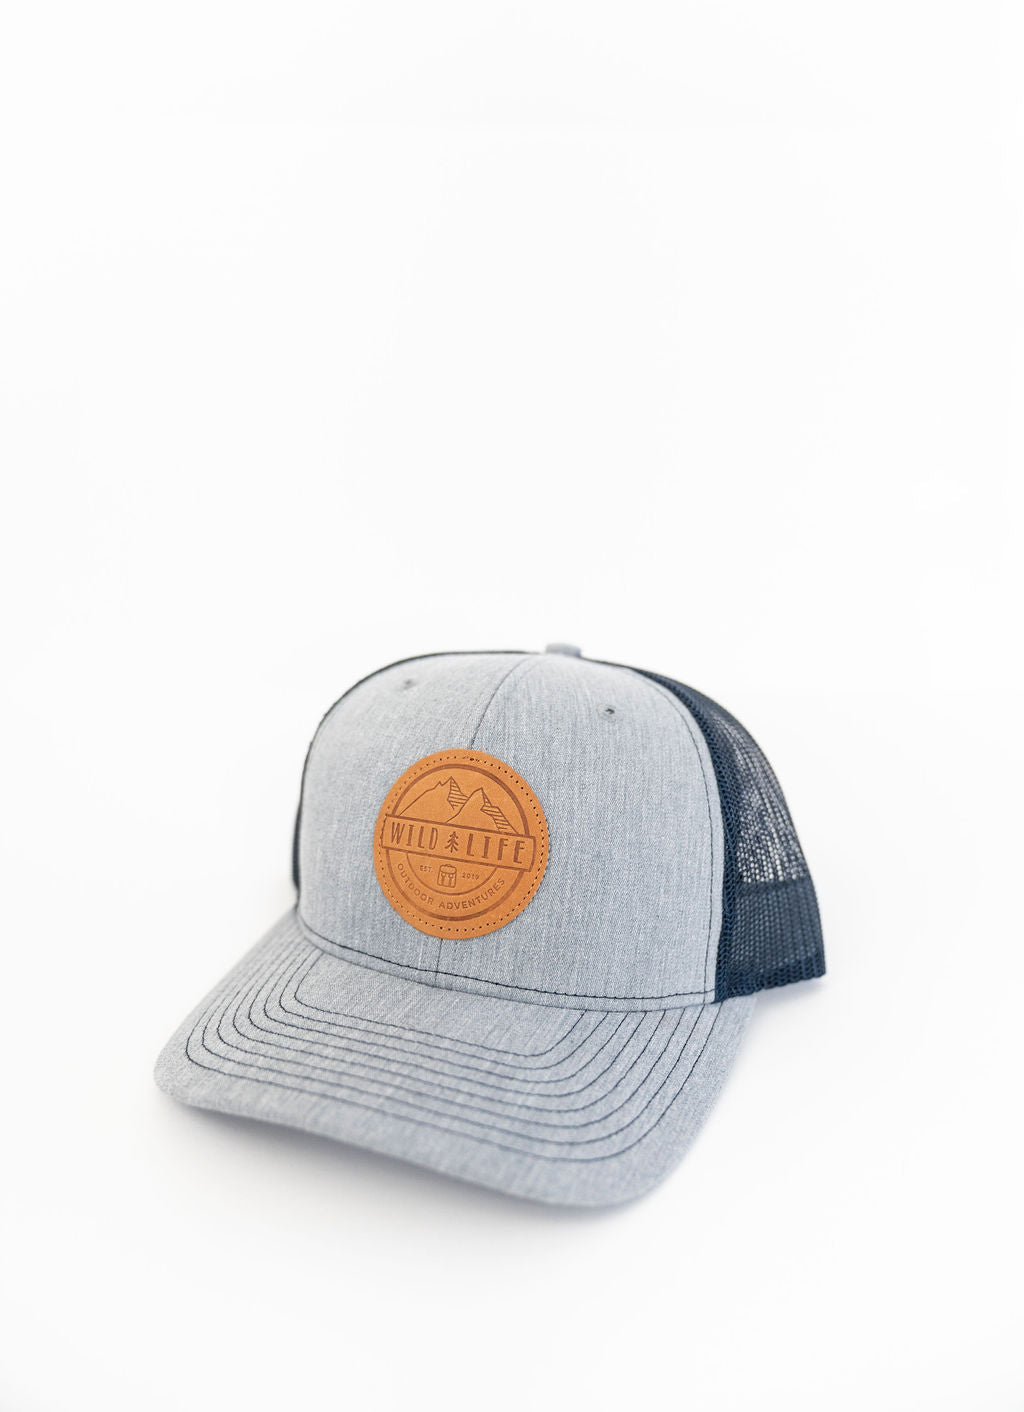 "The Wild | Life ""Sunny Days"" Leather Crest Logo Ball Cap Navy/Grey"